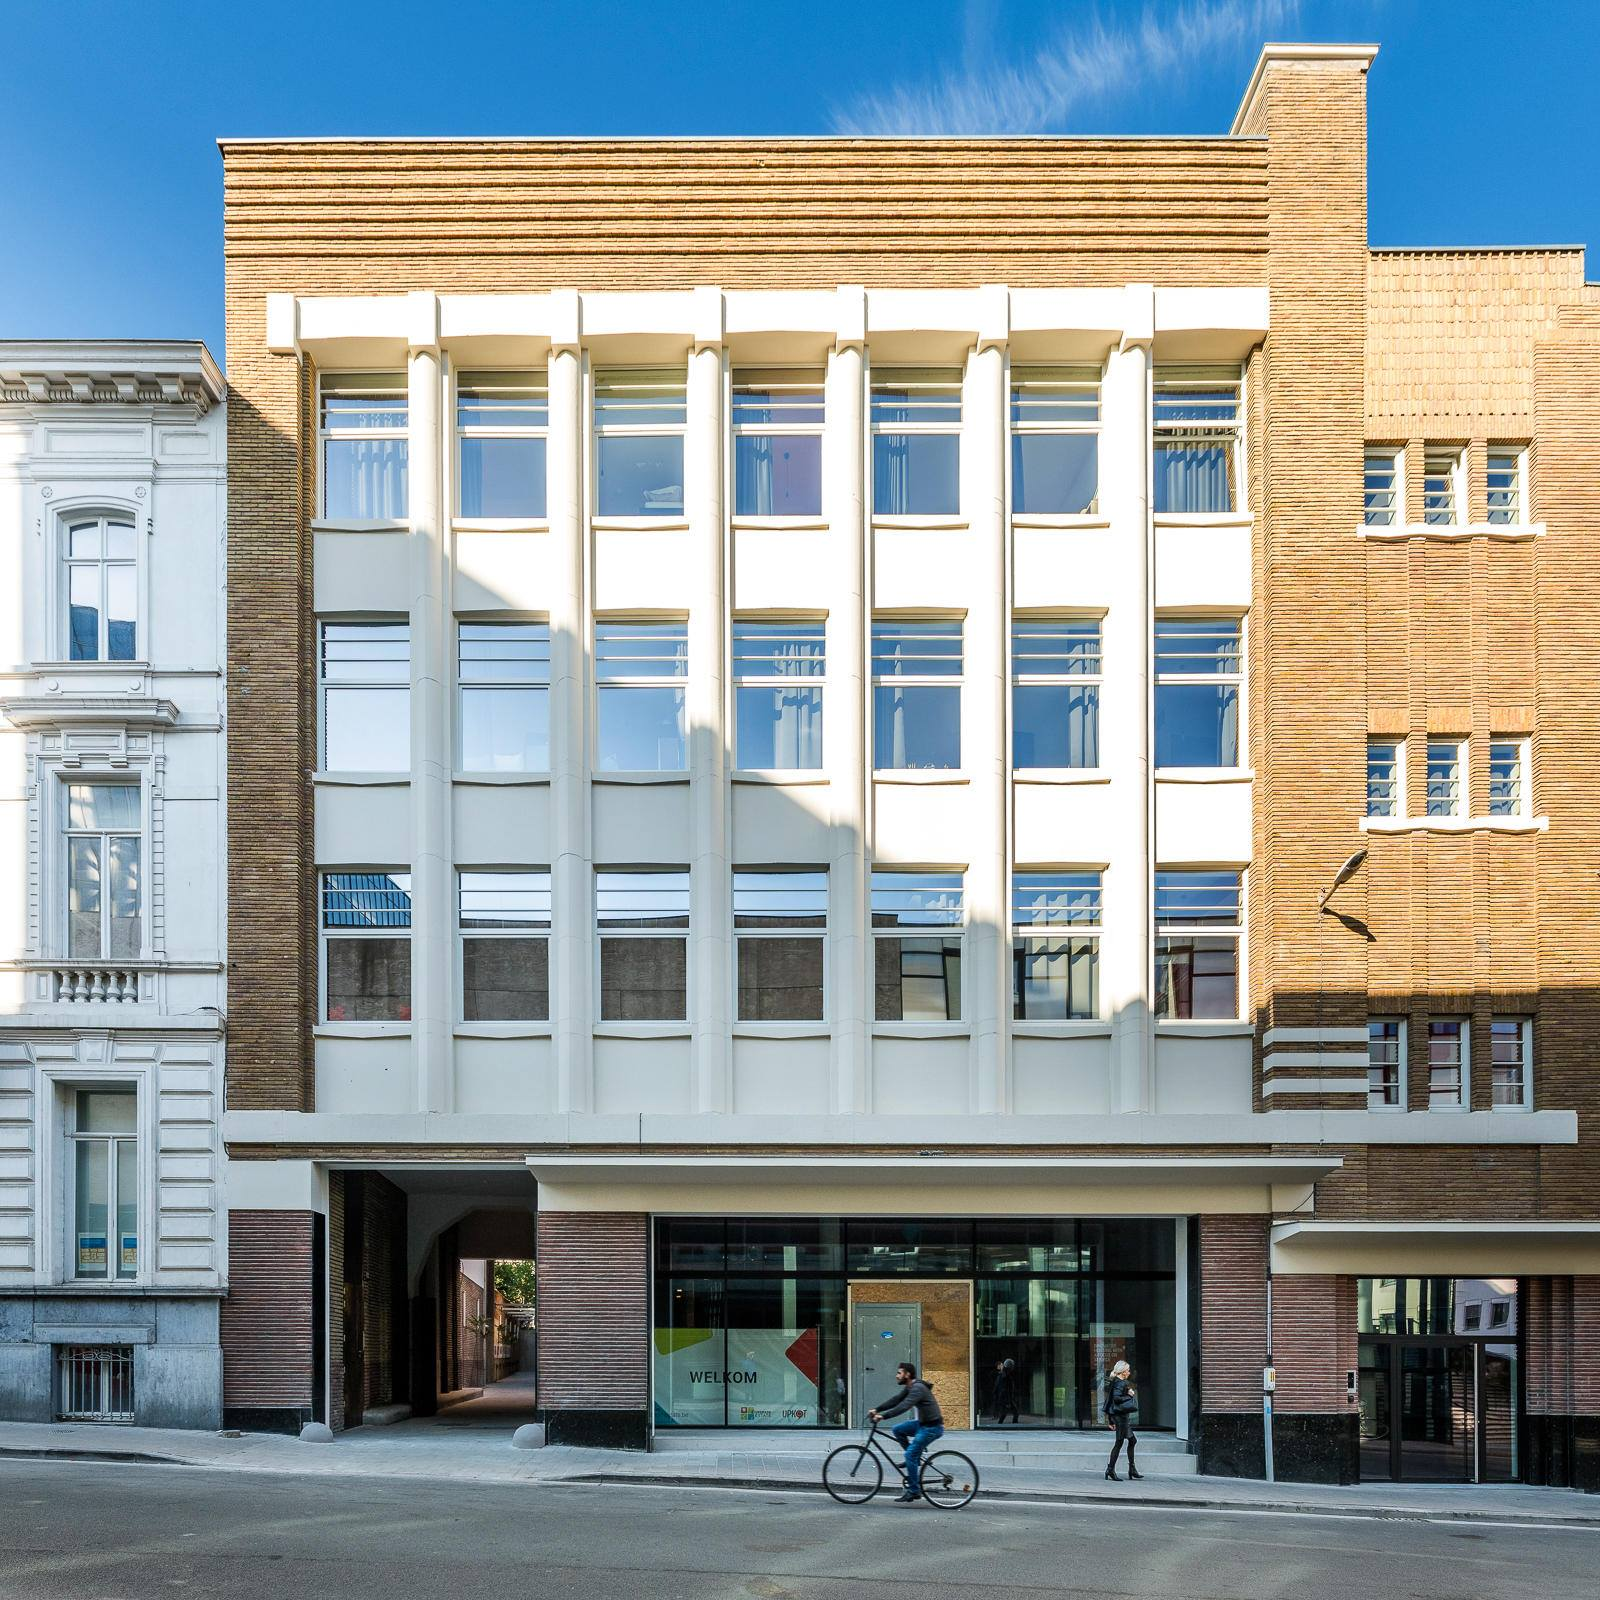 43580120 1900265476726455 2467244706216542208 o | Baeyens & Beck architecten Gent | architect nieuwbouw renovatie interieur | high end | architectenbureau